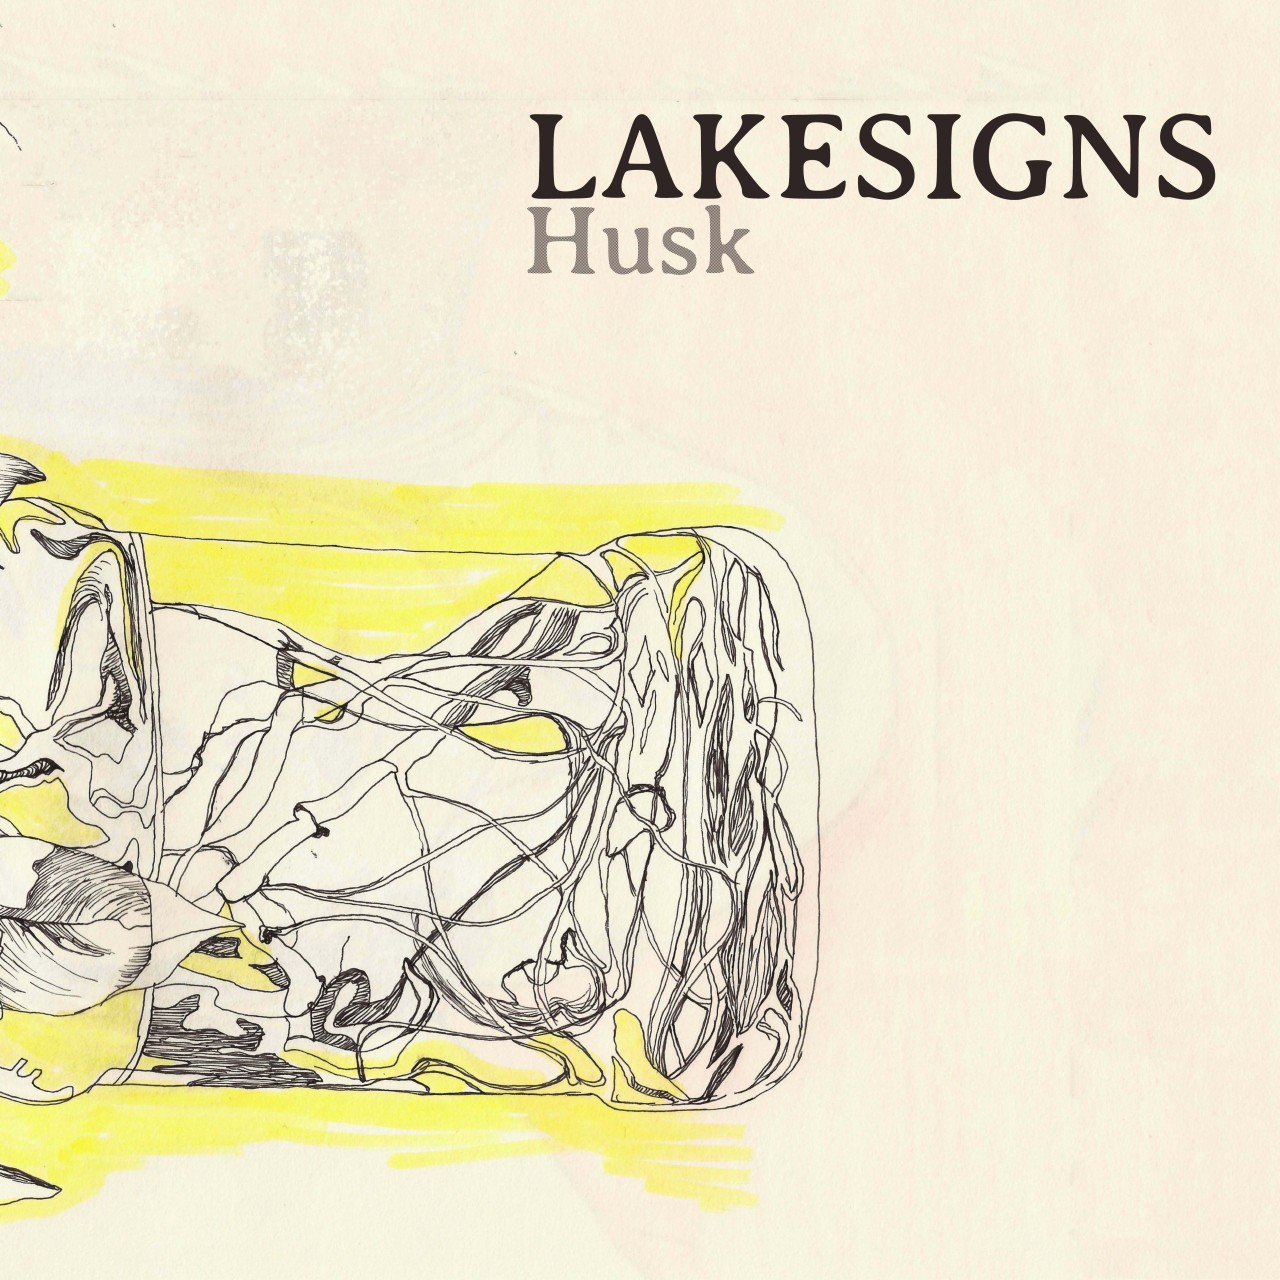 New album from Lakesigns, out in a week! Follow the link to stream two new tracks and pre-order your copy now: http://lakesigns.bandcamp.com/album/husk